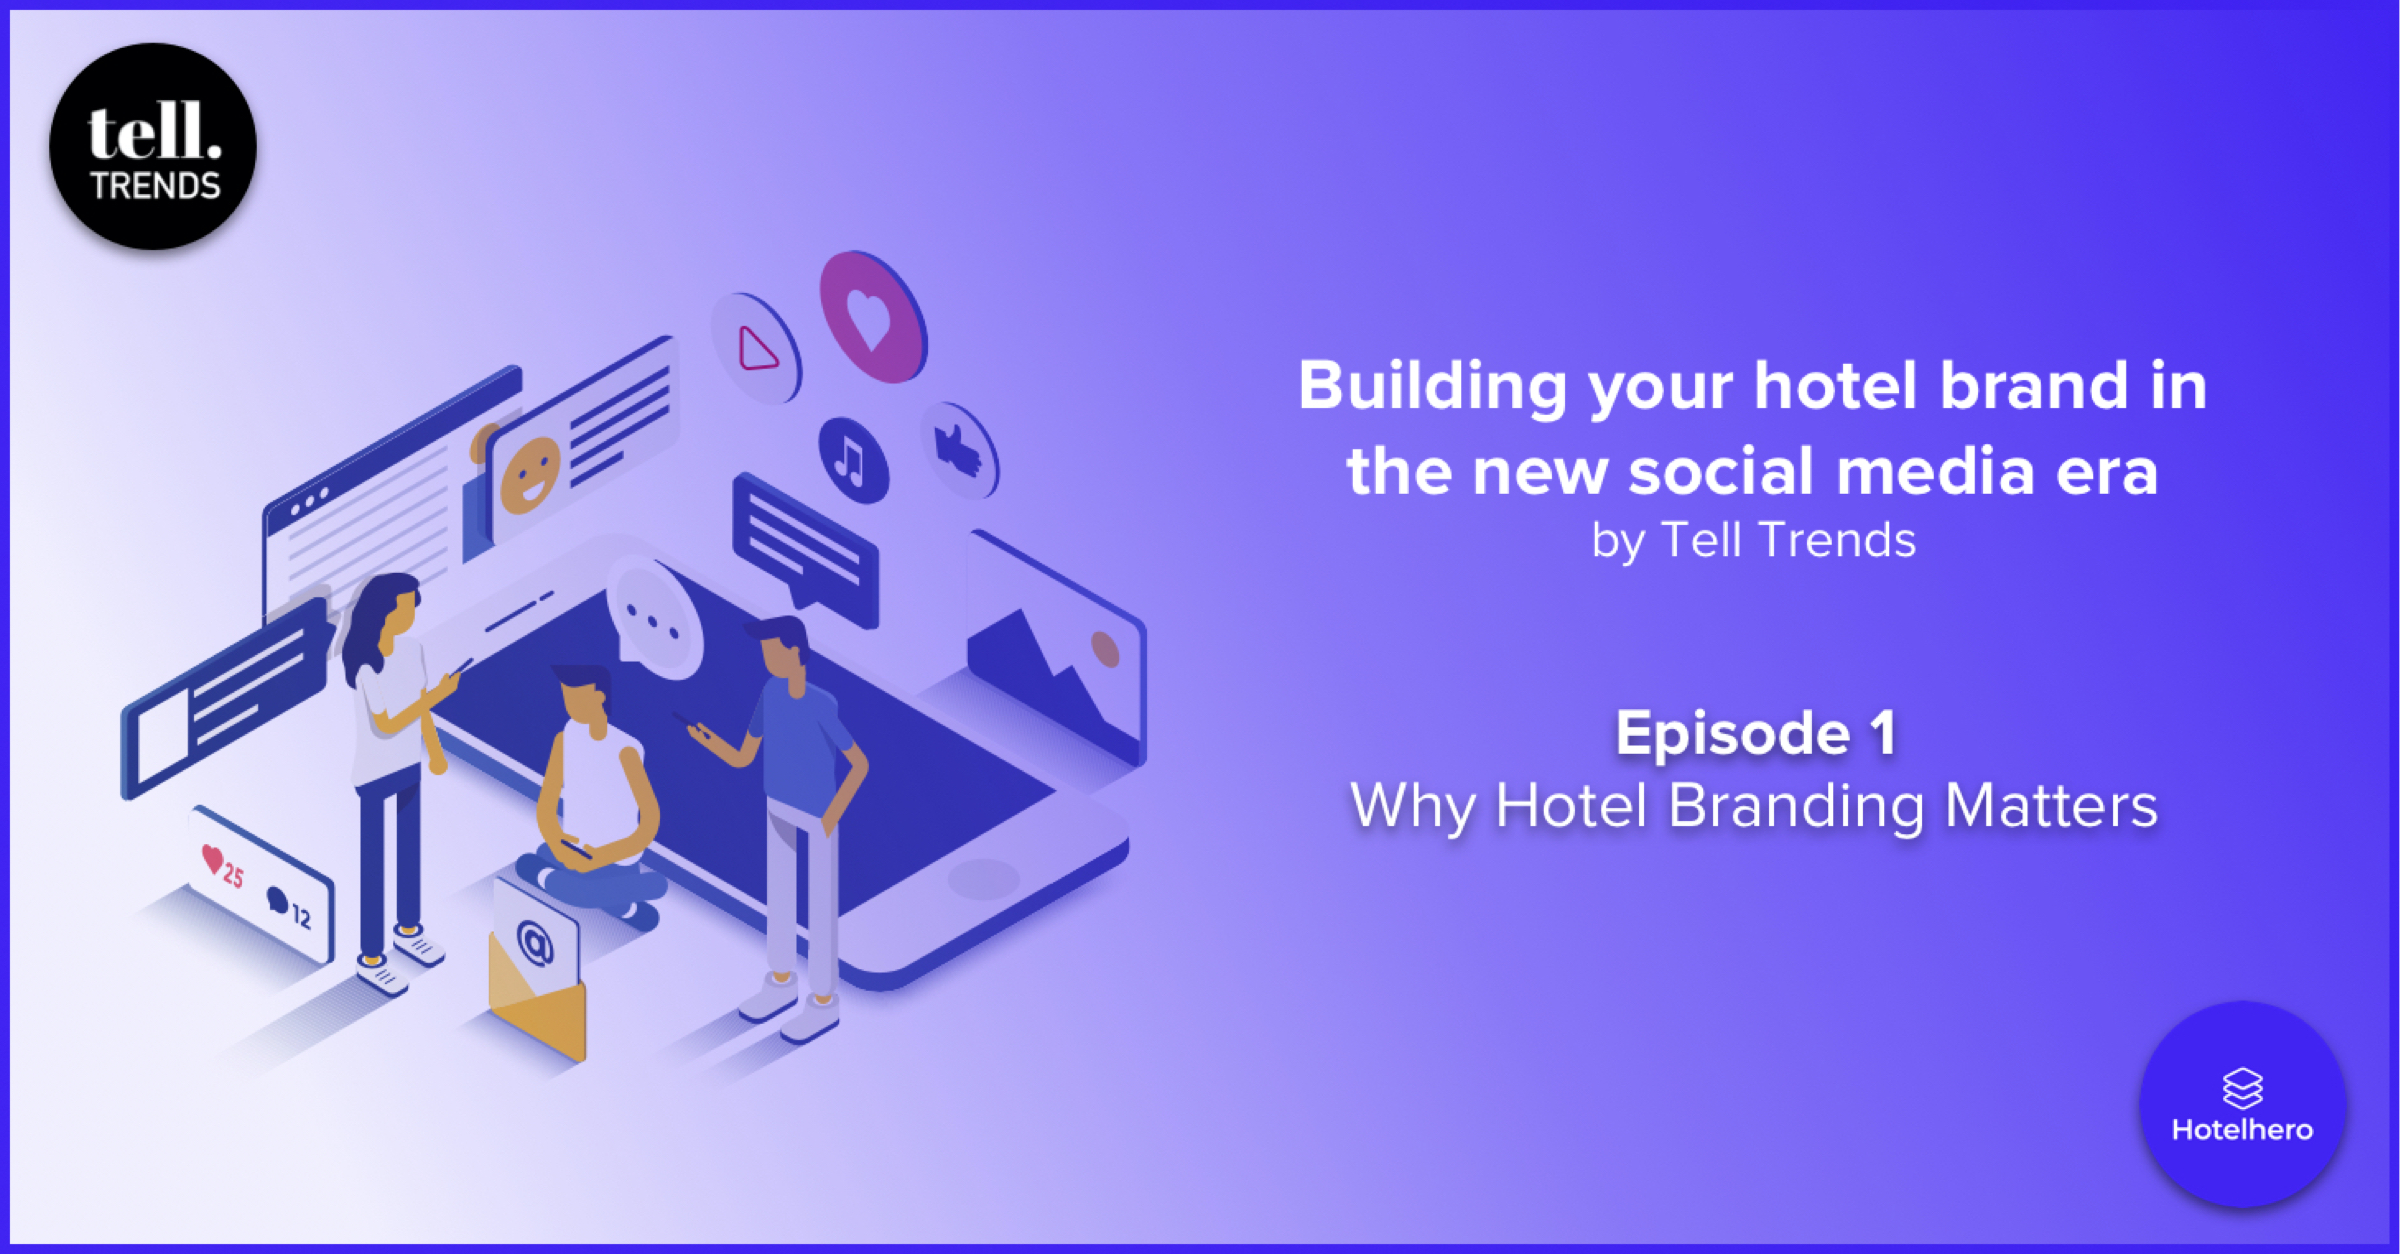 Building your hotel brand in the new social media era |  Episode 1: Why Hotel Branding Matters by Tell Trends